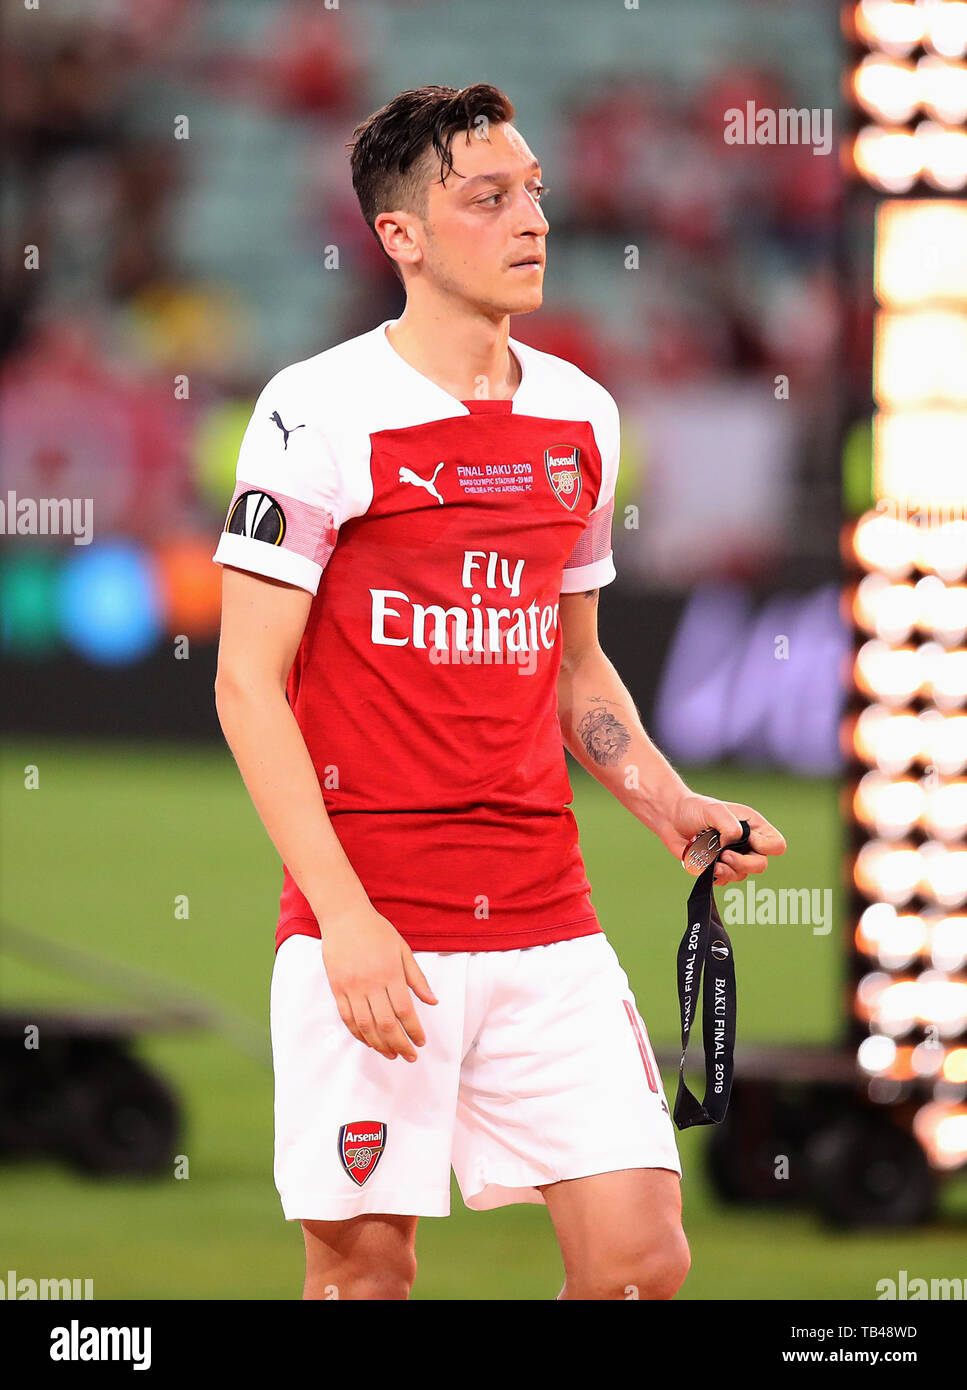 Arsenal's Mesut Ozil takes off his runners-up medal after the UEFA Europa League final at The Olympic Stadium, Baku, Azerbaijan. - Stock Image